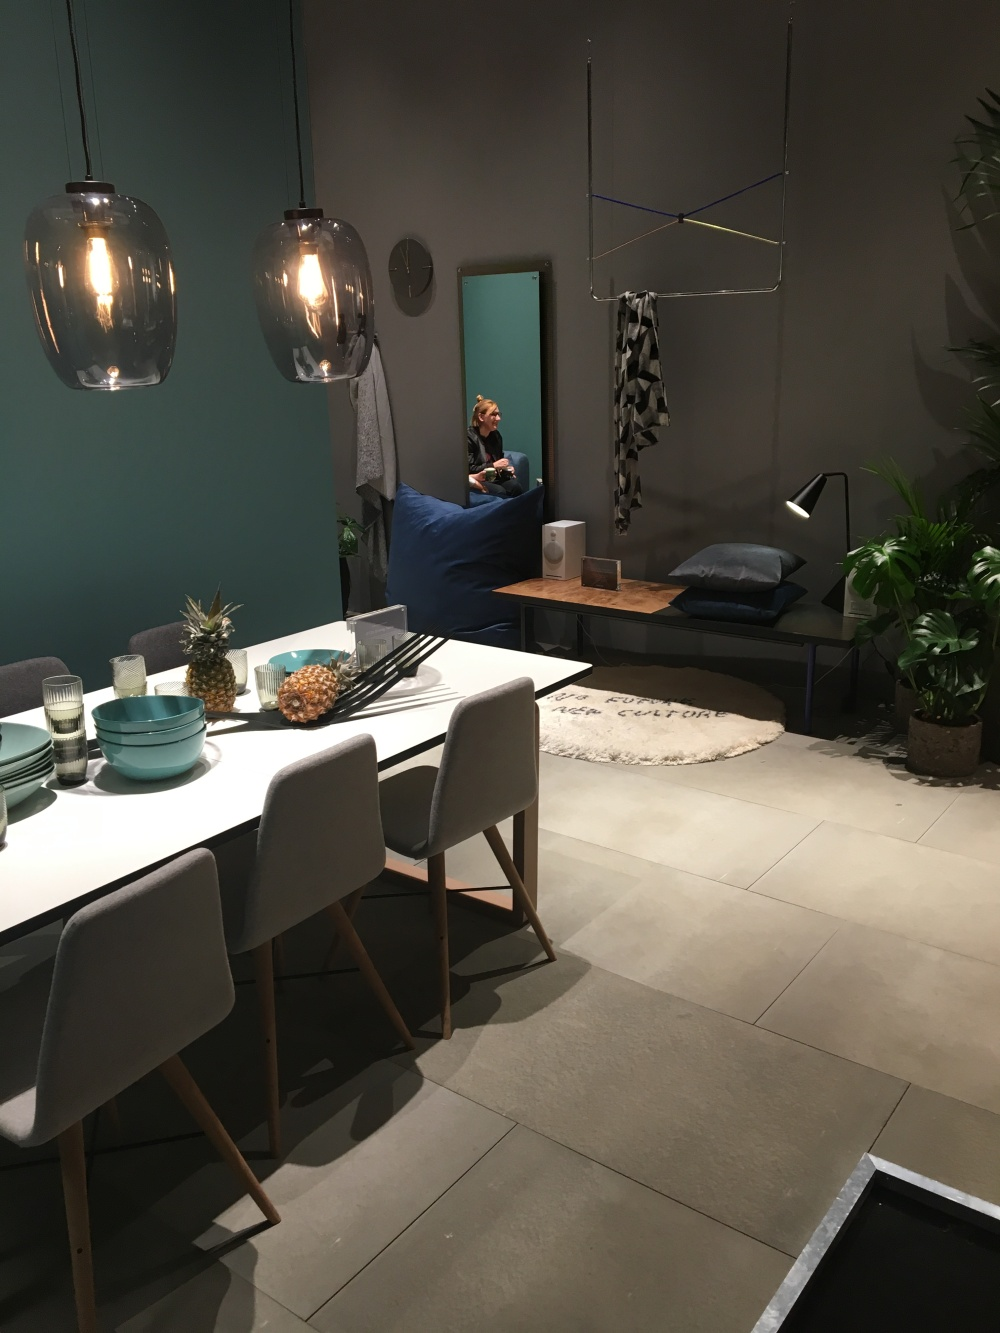 bolia - new scandinavian design (hall 2.2 - pure editions)